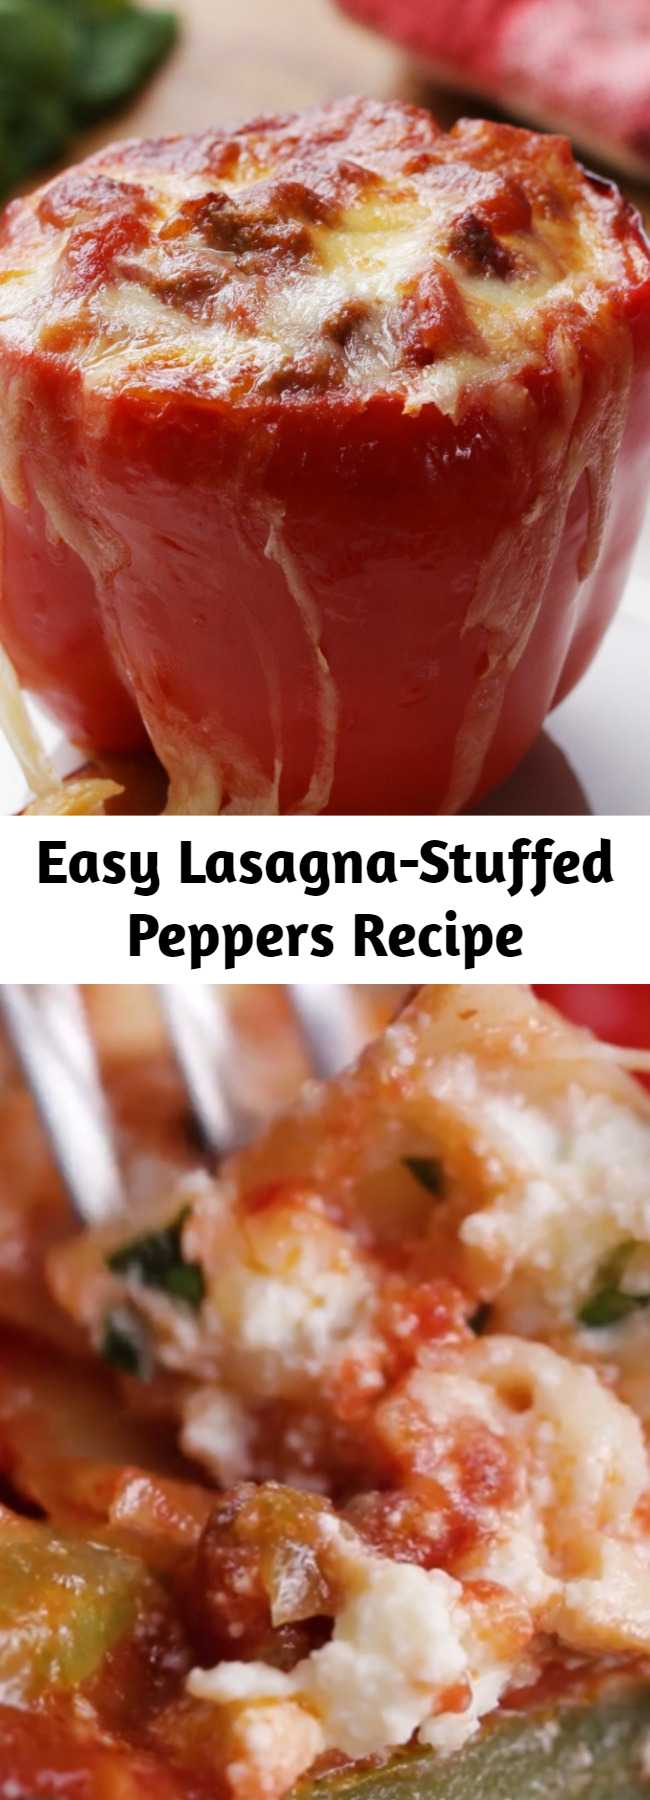 Easy Lasagna-Stuffed Peppers Recipe - Lasagna Stuffed Peppers!! A very tasty meal that is easy to prepare!